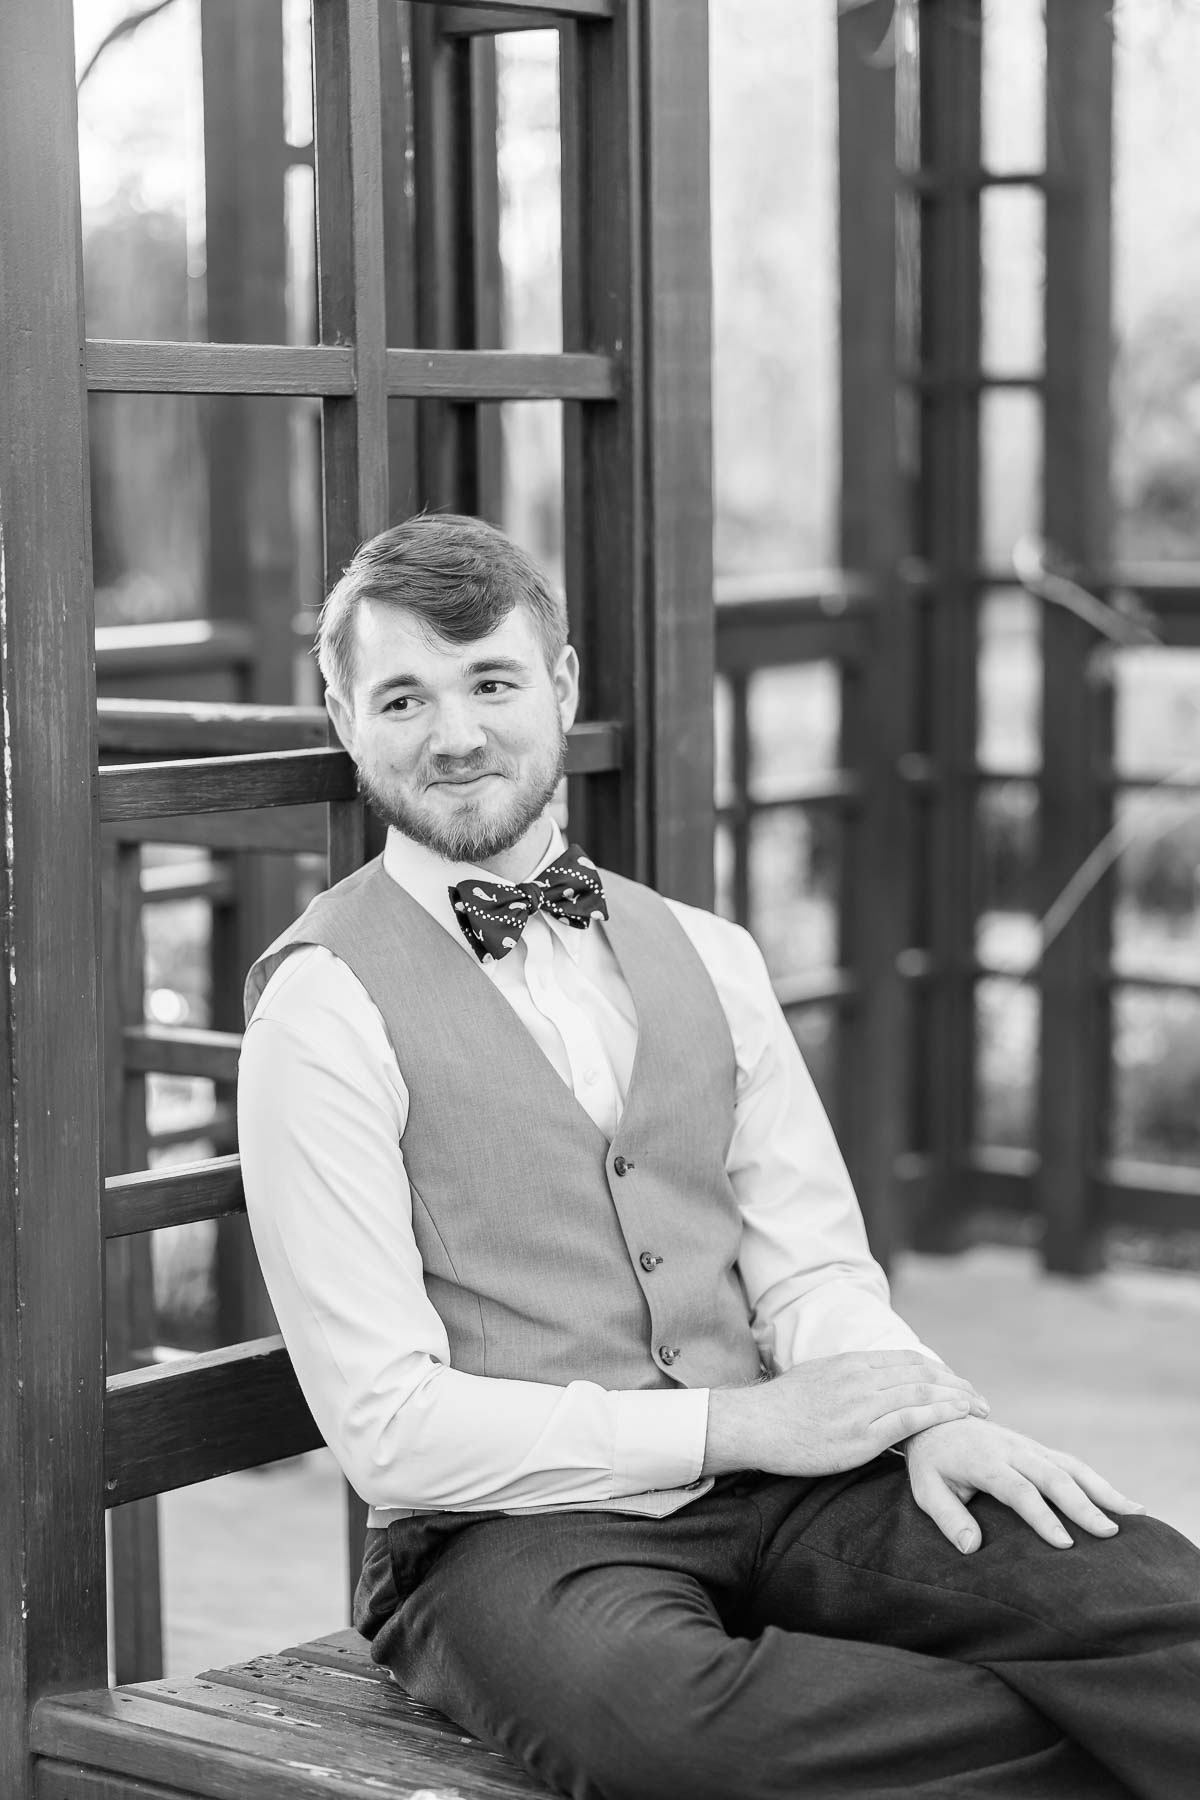 boy in a vest and bow tie sitting and smiling